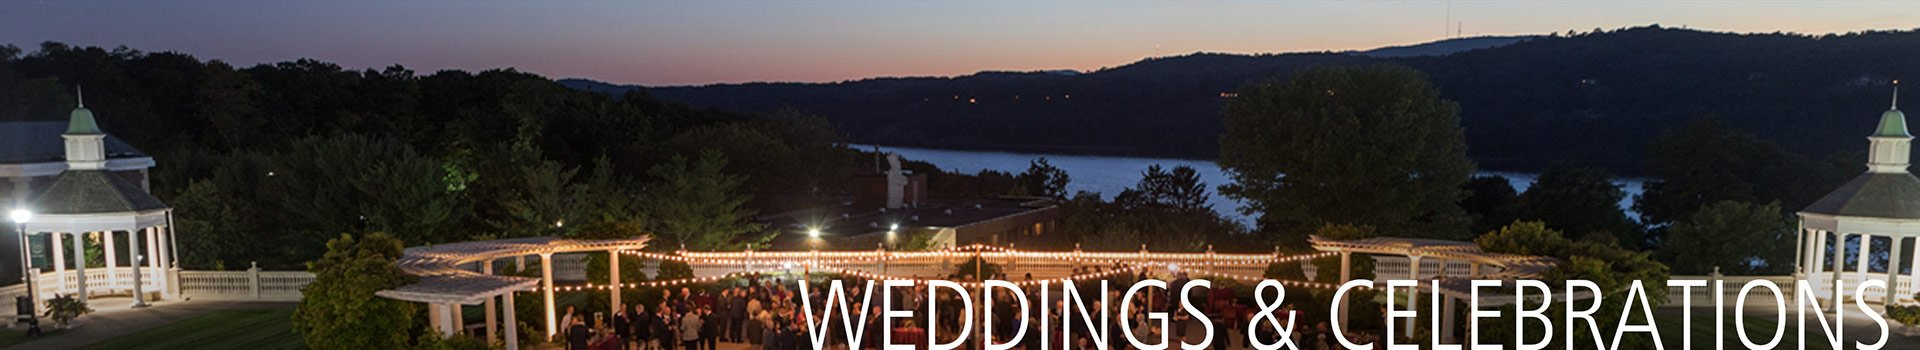 Outdoor wedding on Anton Plaza overlooking the Hudson River, an outdoor wedding venue on the campus of The Culinary Institute of America in Hyde Park, NY.